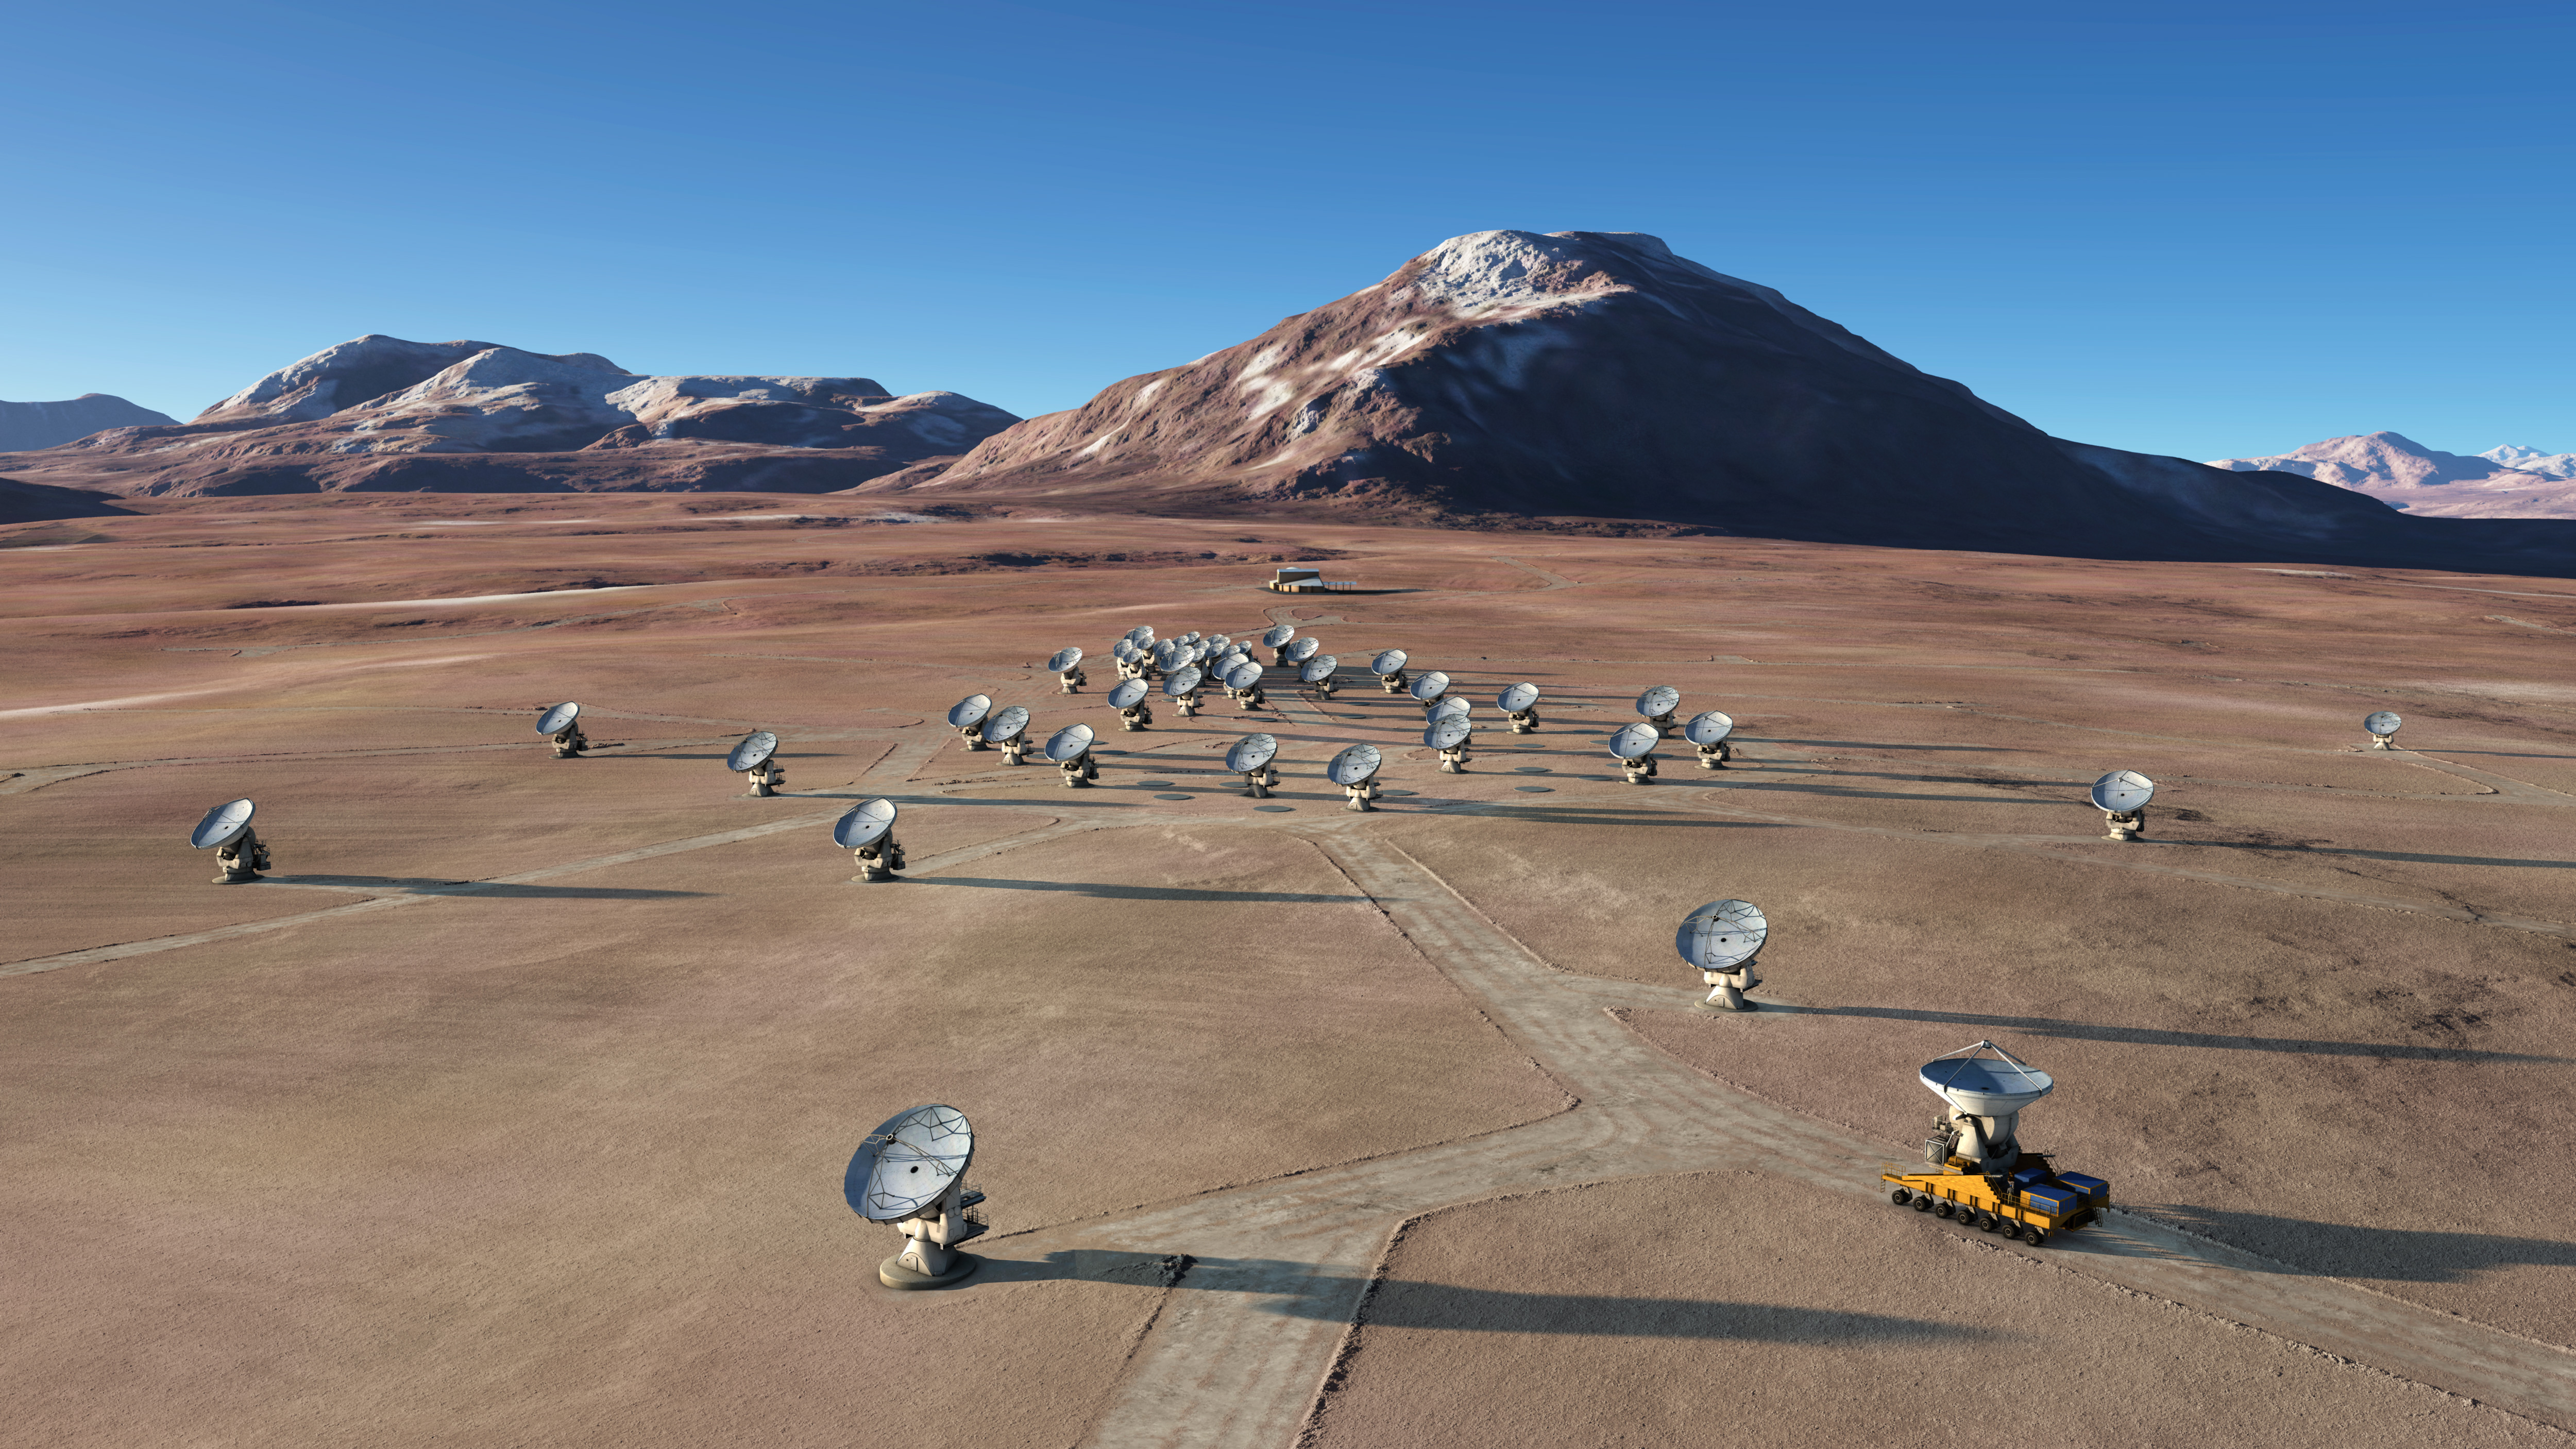 https://upload.wikimedia.org/wikipedia/commons/d/de/The_future_ALMA_array_on_Chajnantor.jpg